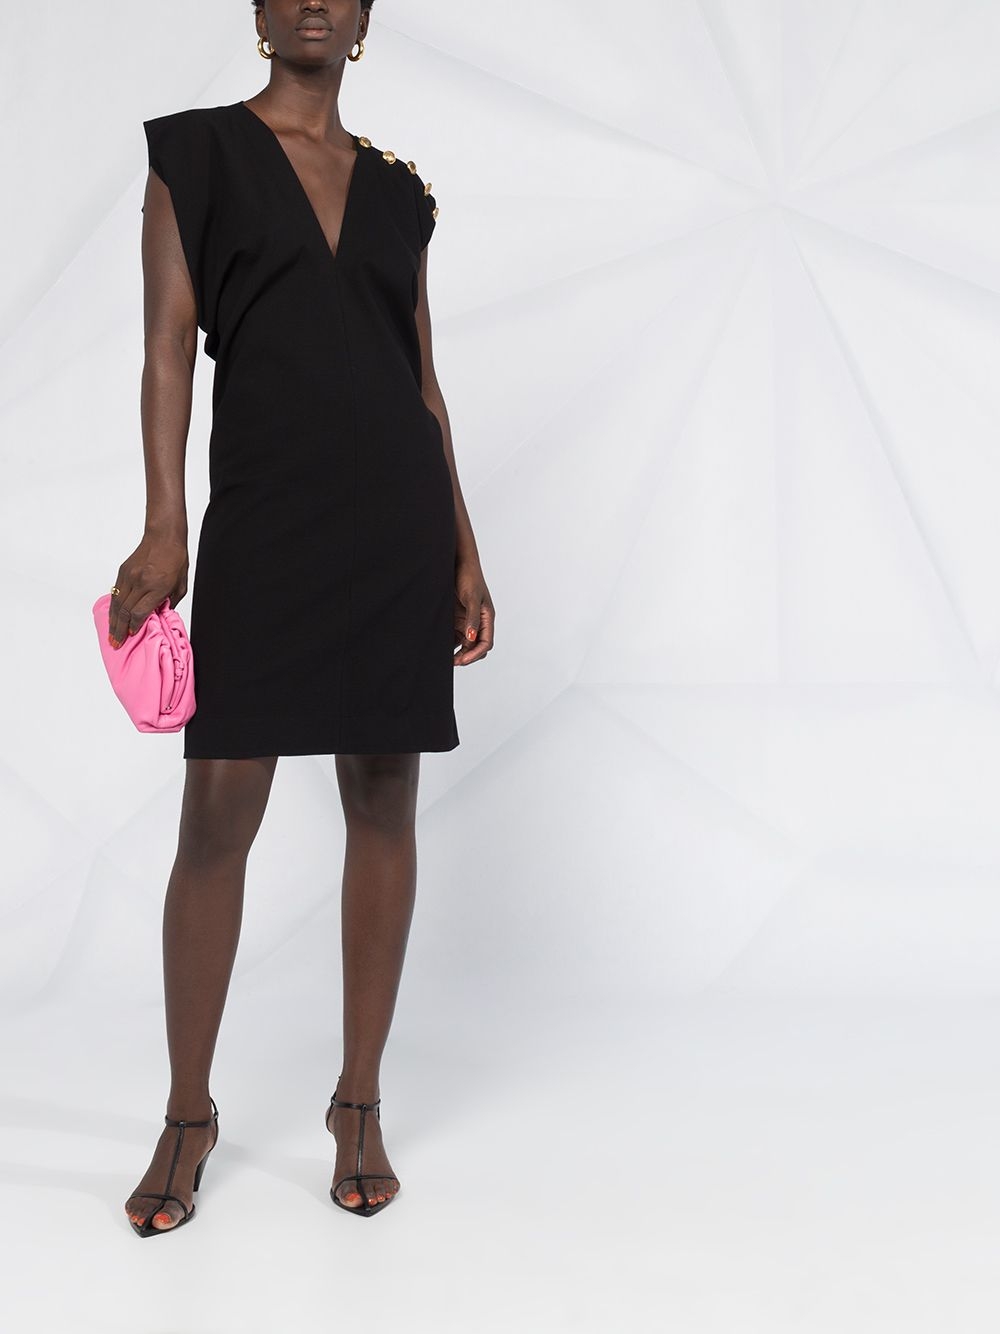 black V-neck dress featuring gold decorative button detailing on the shoulder GIVENCHY |  | BW20YM30J6001